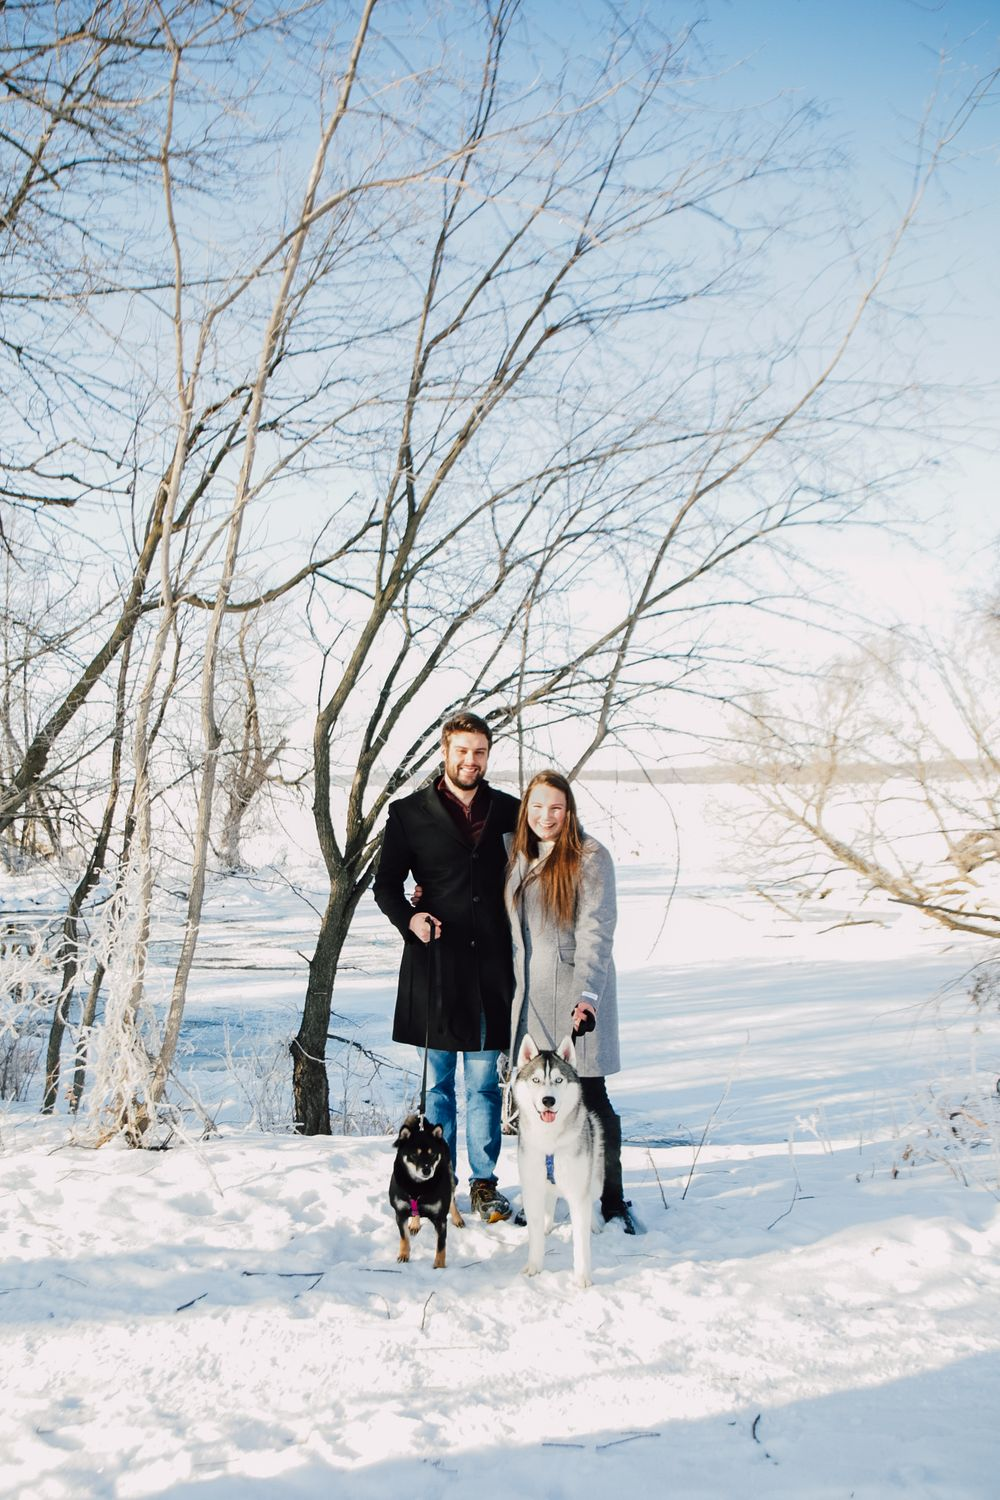 Detroit Lakes MN, Dunton Locks, Fargo ND Photographers, MN Photographers, Engagement Pictures, MN Winter, Love Story